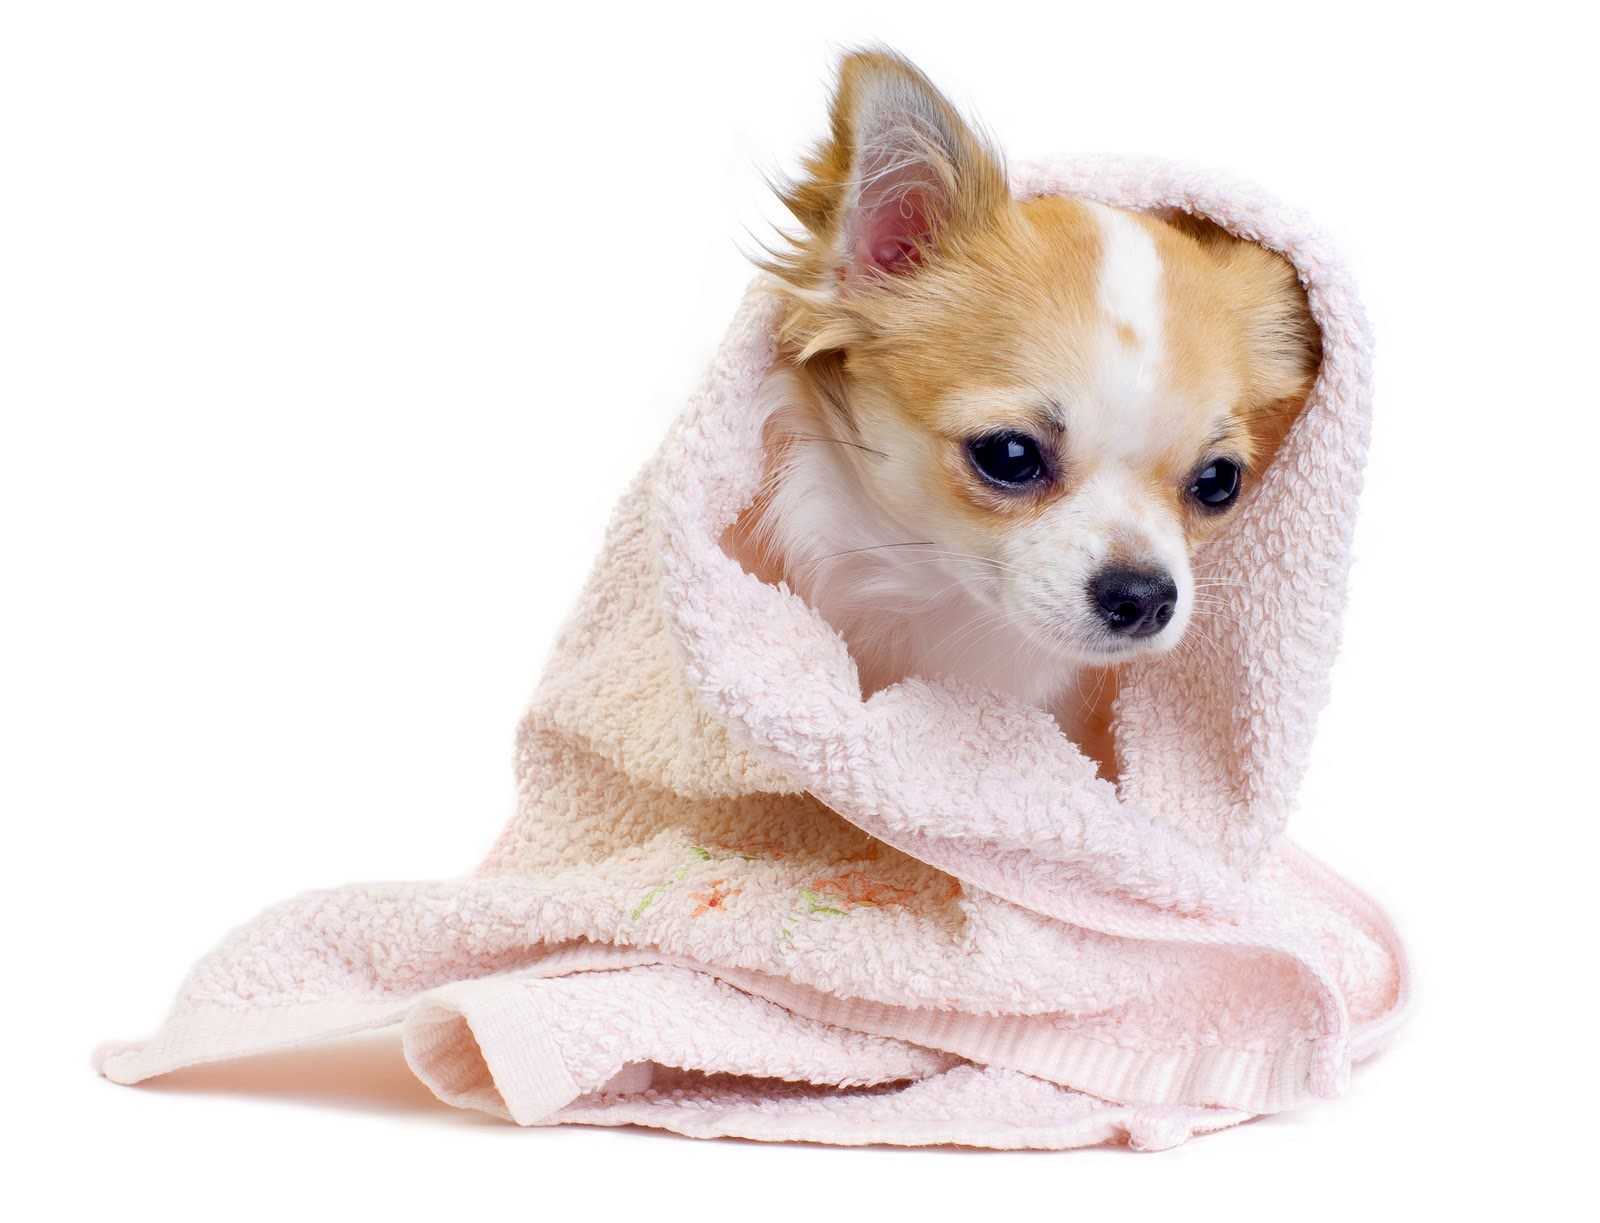 Cute Dog Wallpaper or download picture of Beauty Cute Dog Wallpaper on 1600x1223